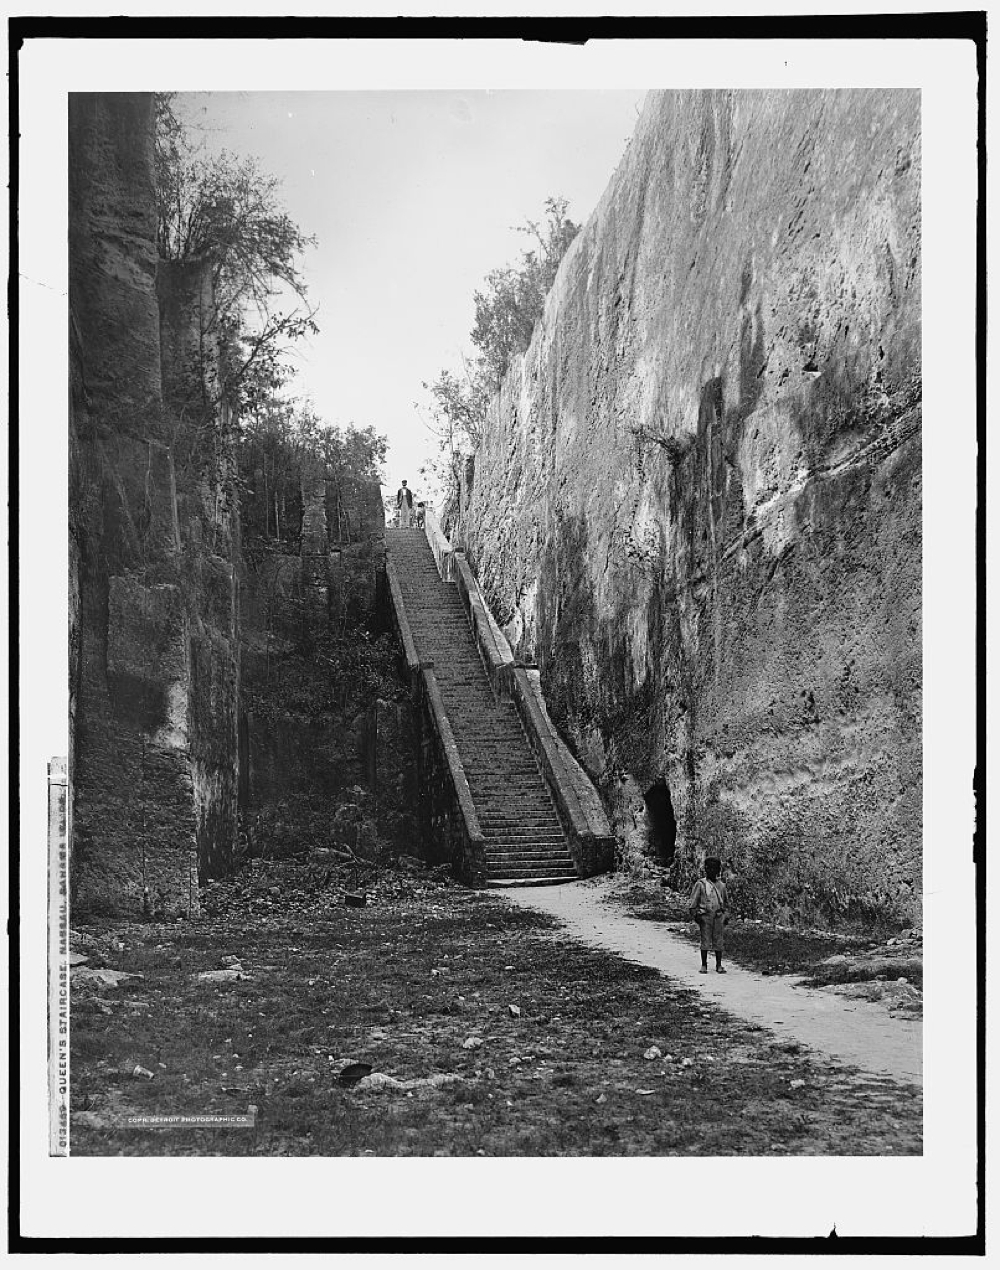 Queen's staircase, Nassau, Bahama Islds